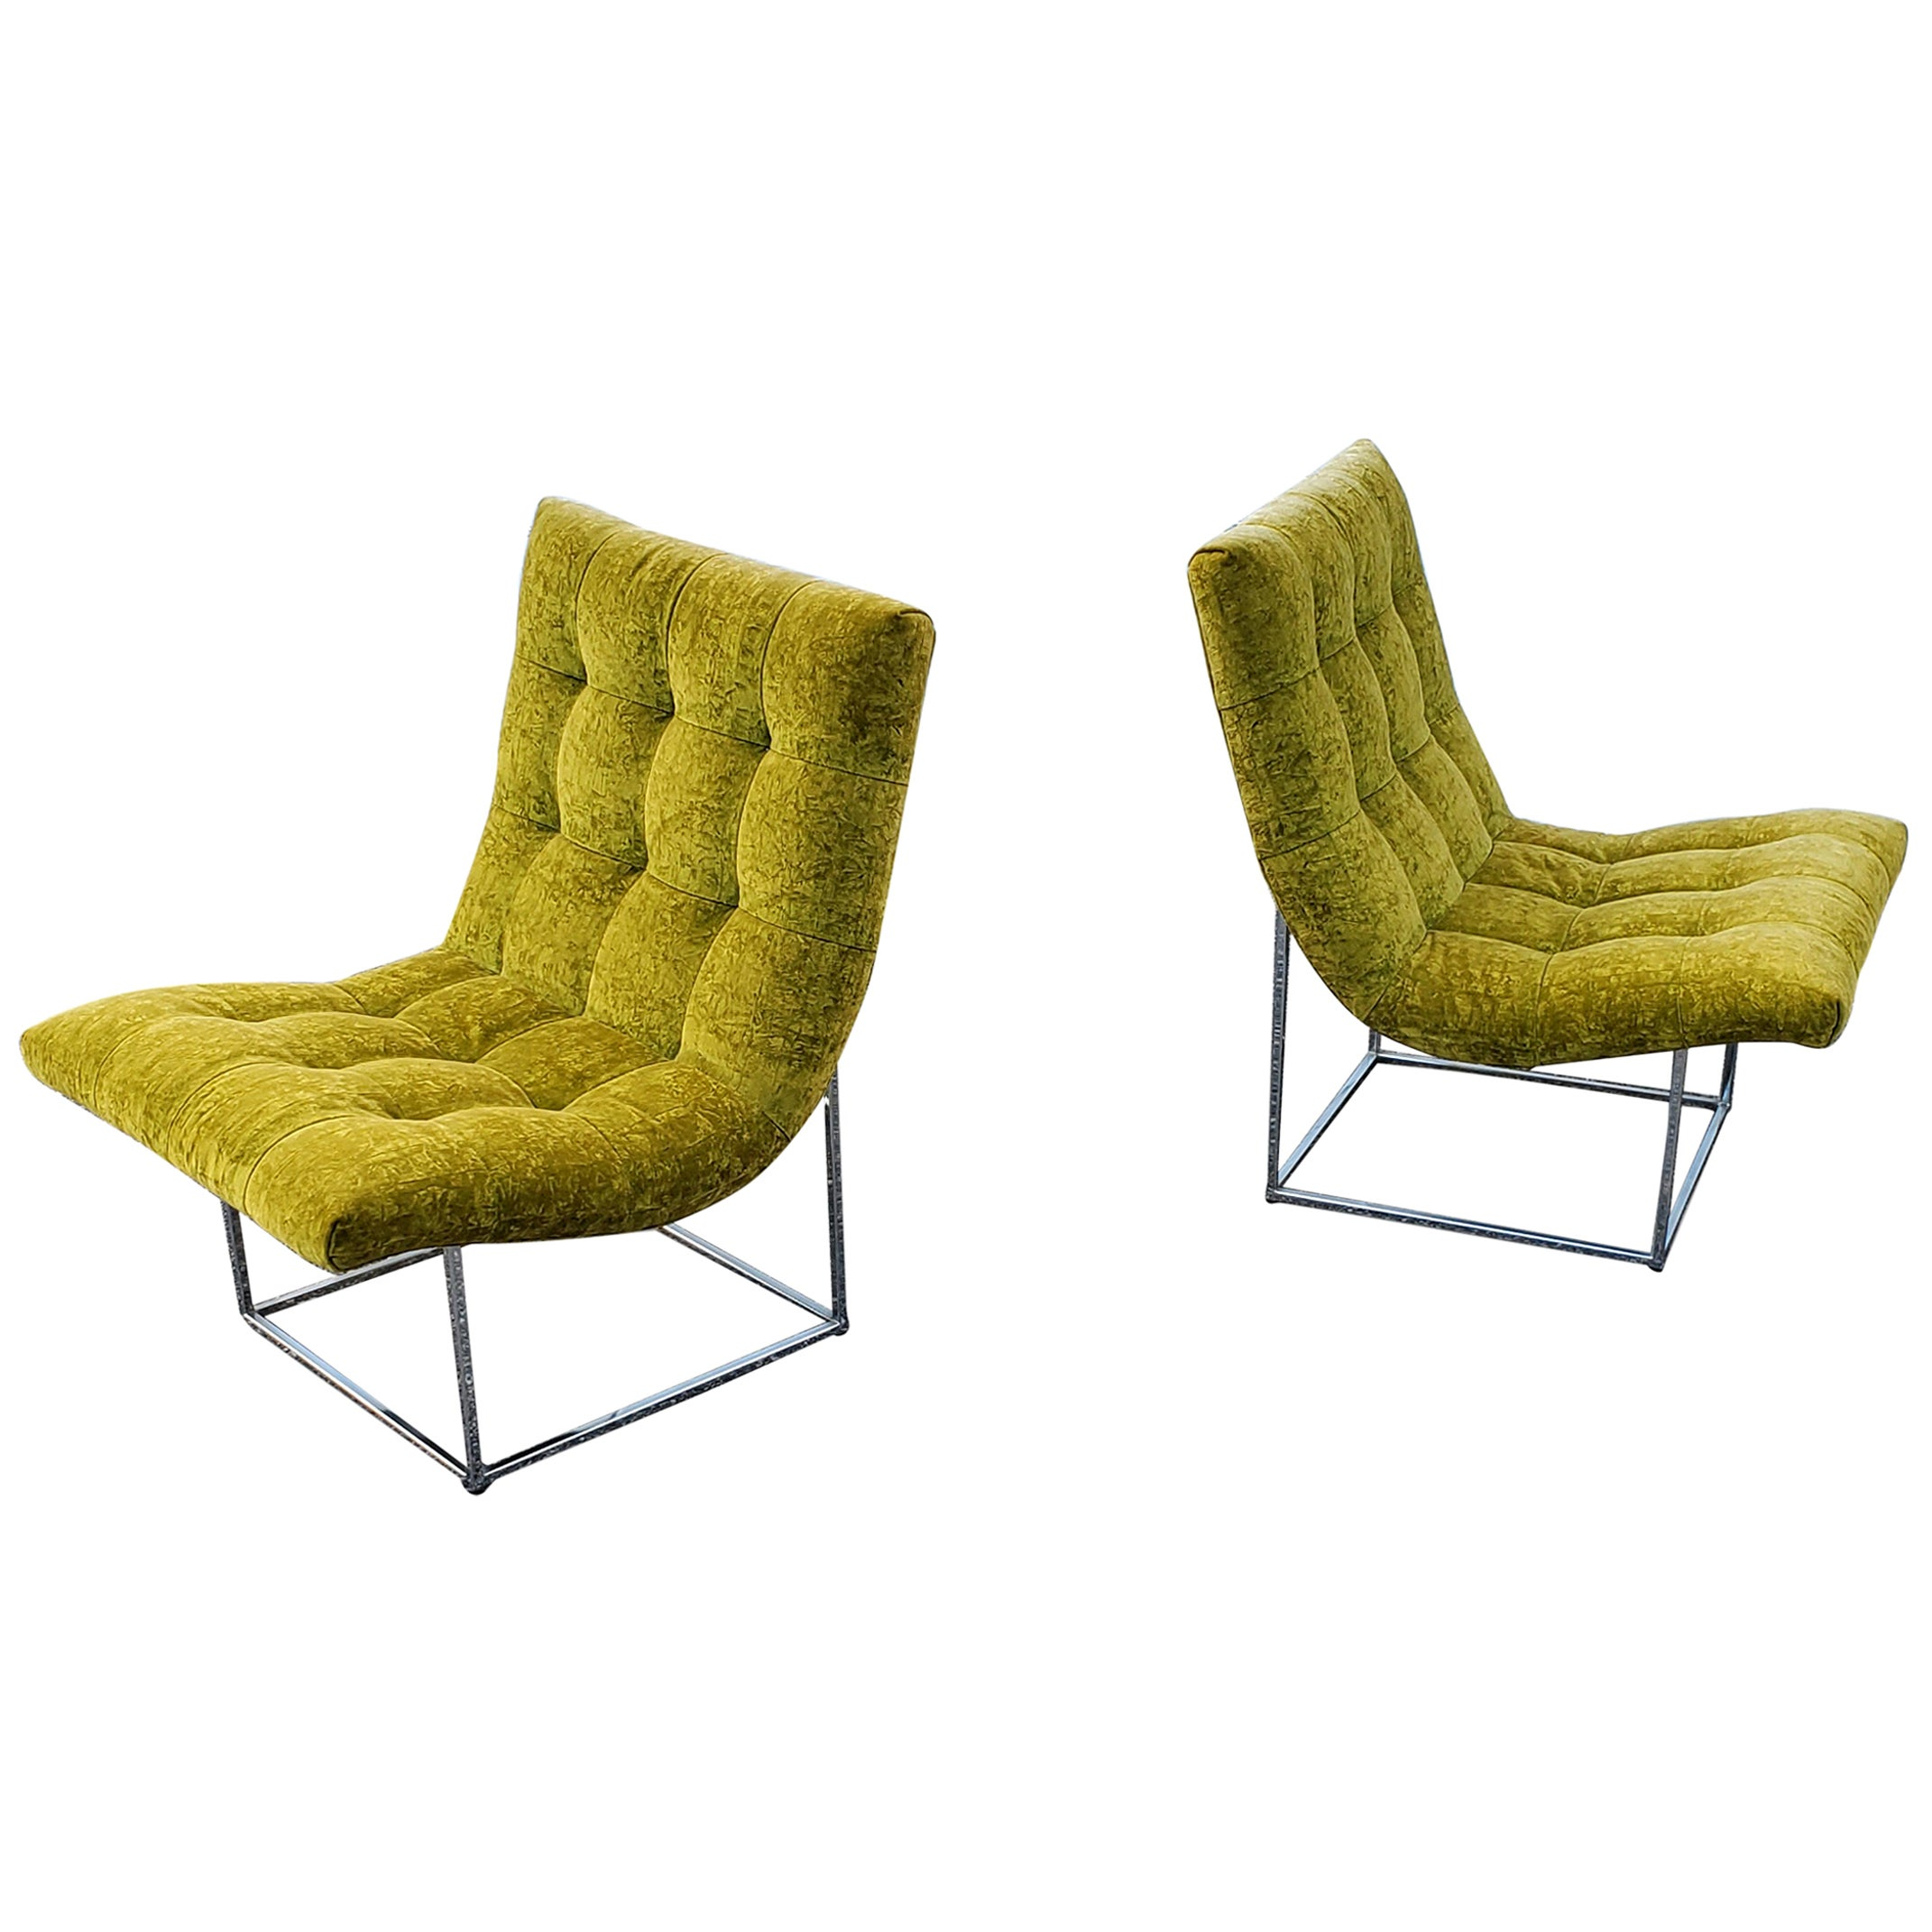 Pair of Milo Baughman for Thayer Coggin Scoop Lounge Chairs